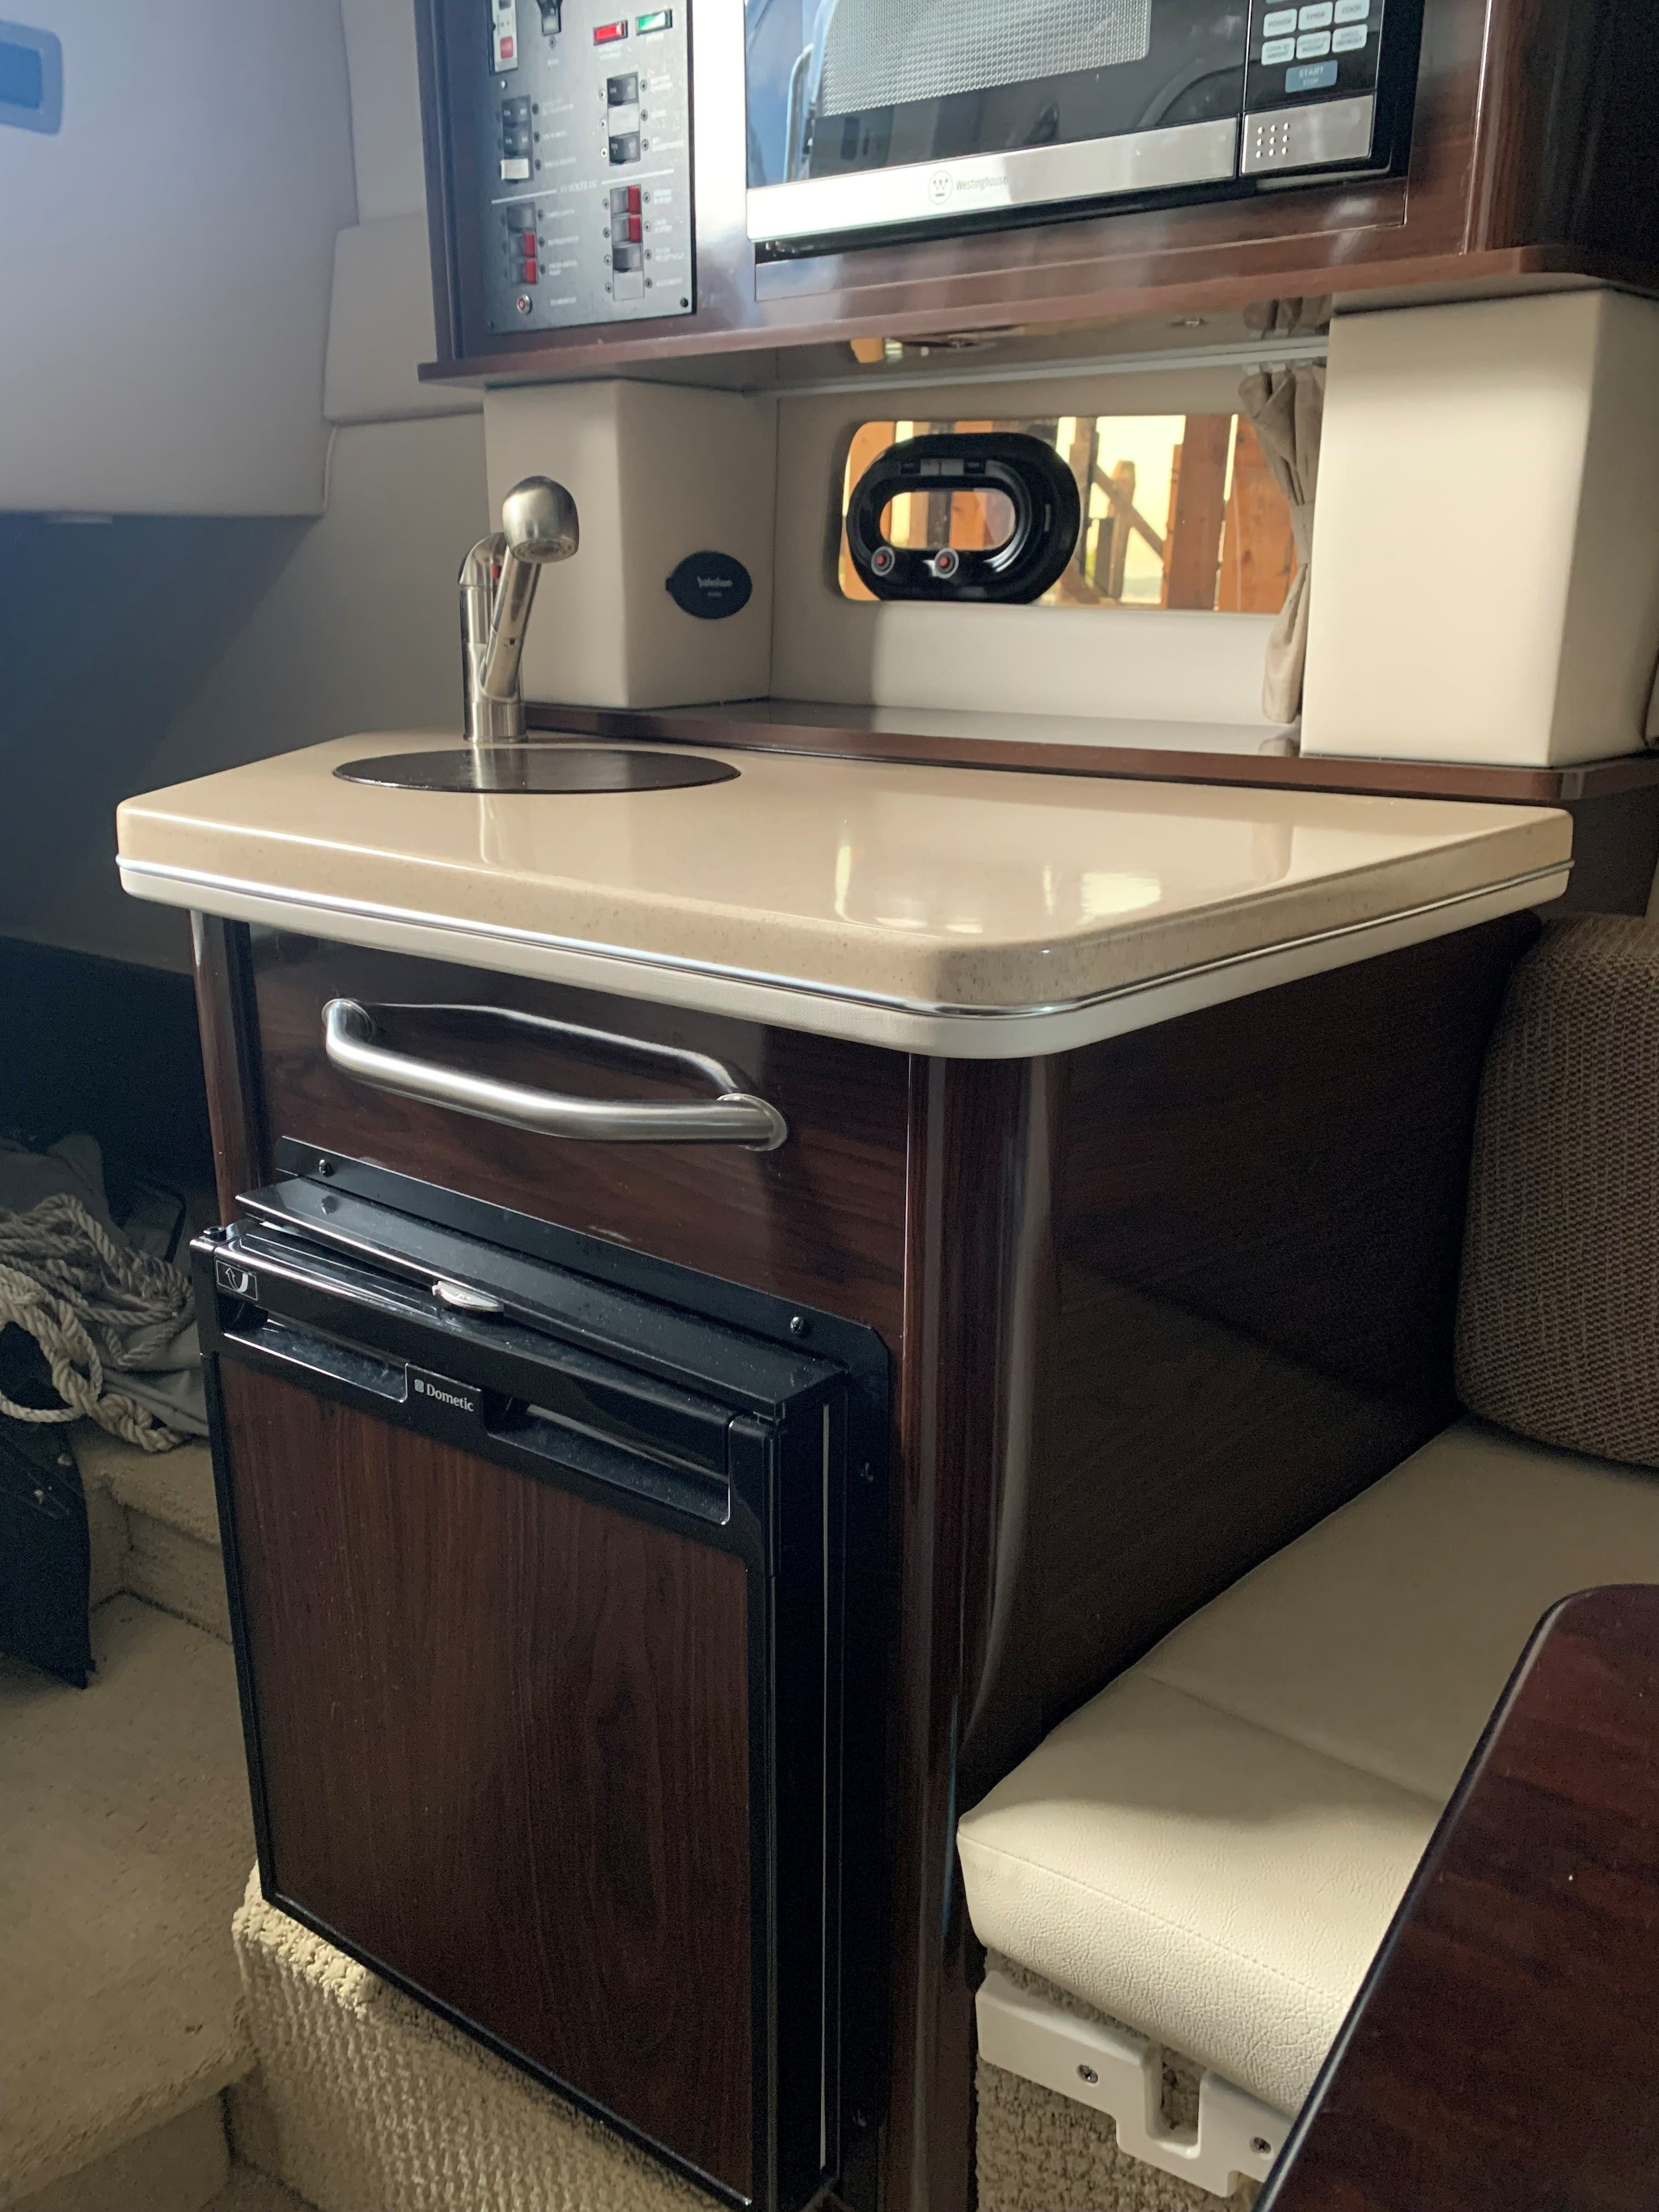 2016 Sea Ray boat for sale, model of the boat is 260 SUNDANCER & Image # 6 of 9